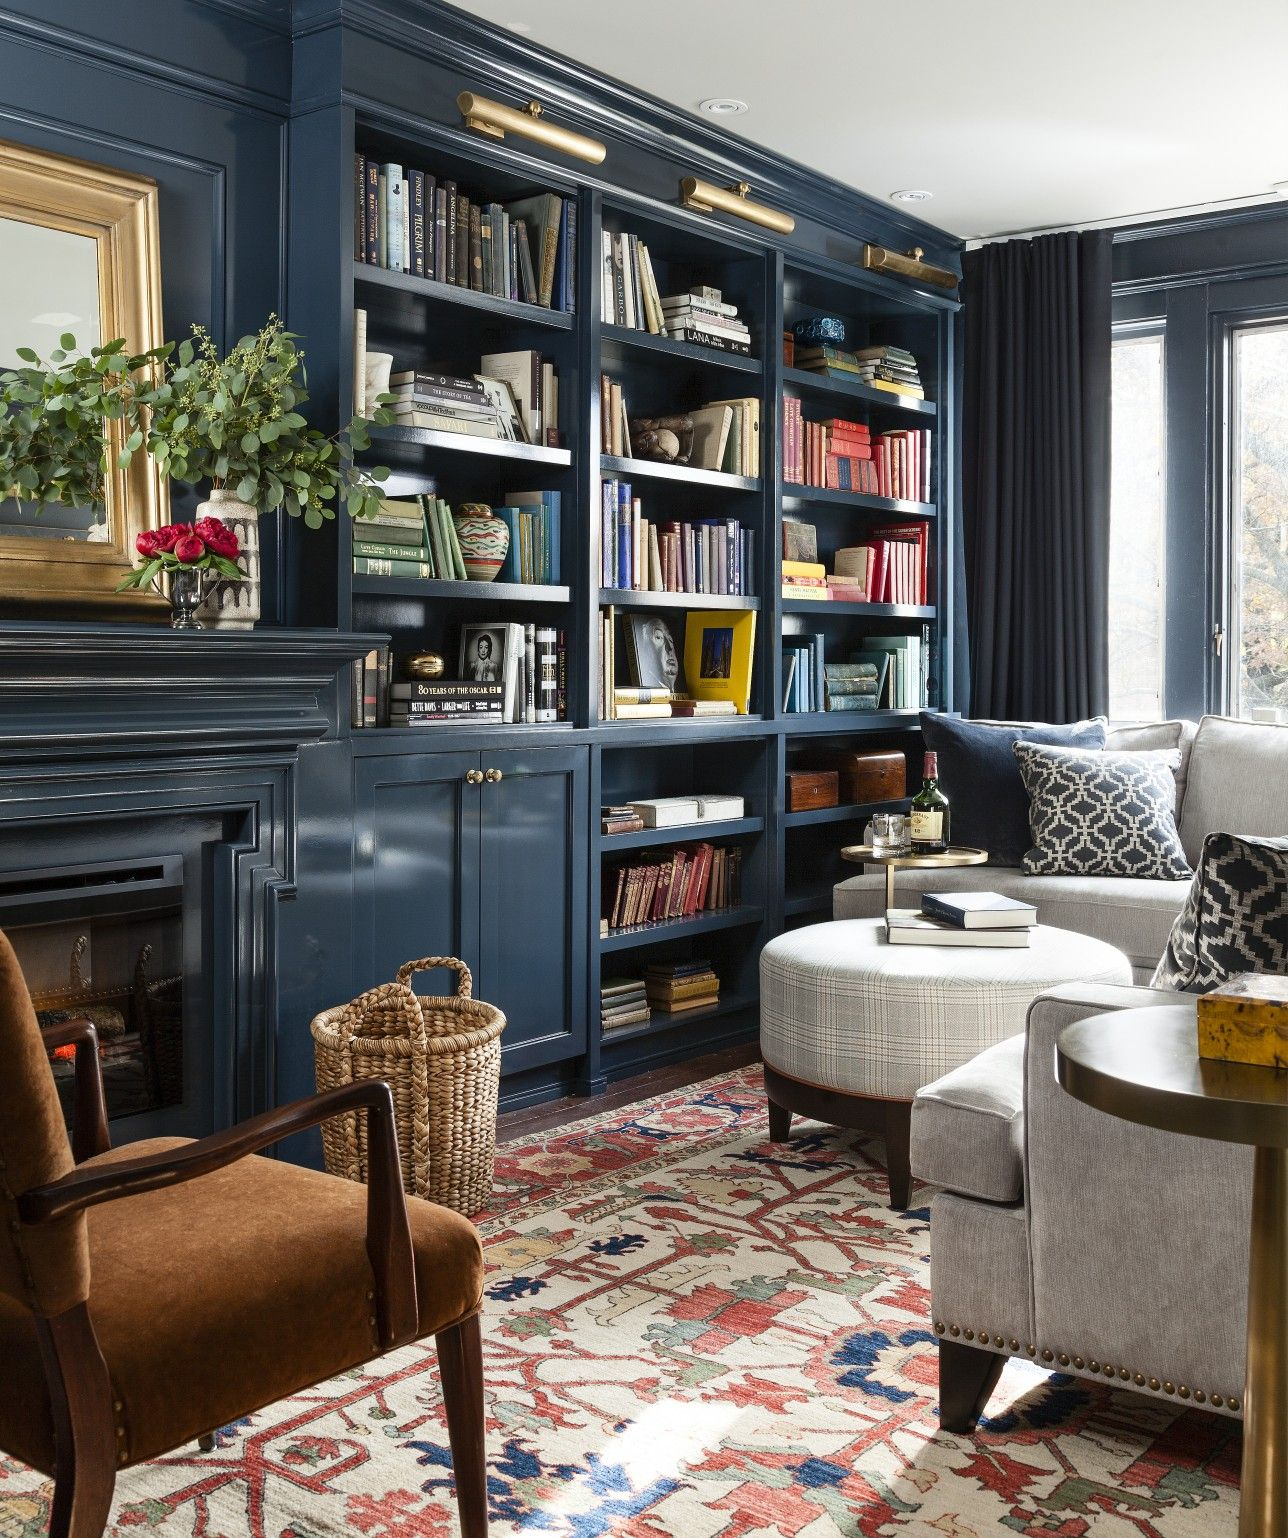 Navy Walls With Built-in Bookshelves And Orange Boho Rug